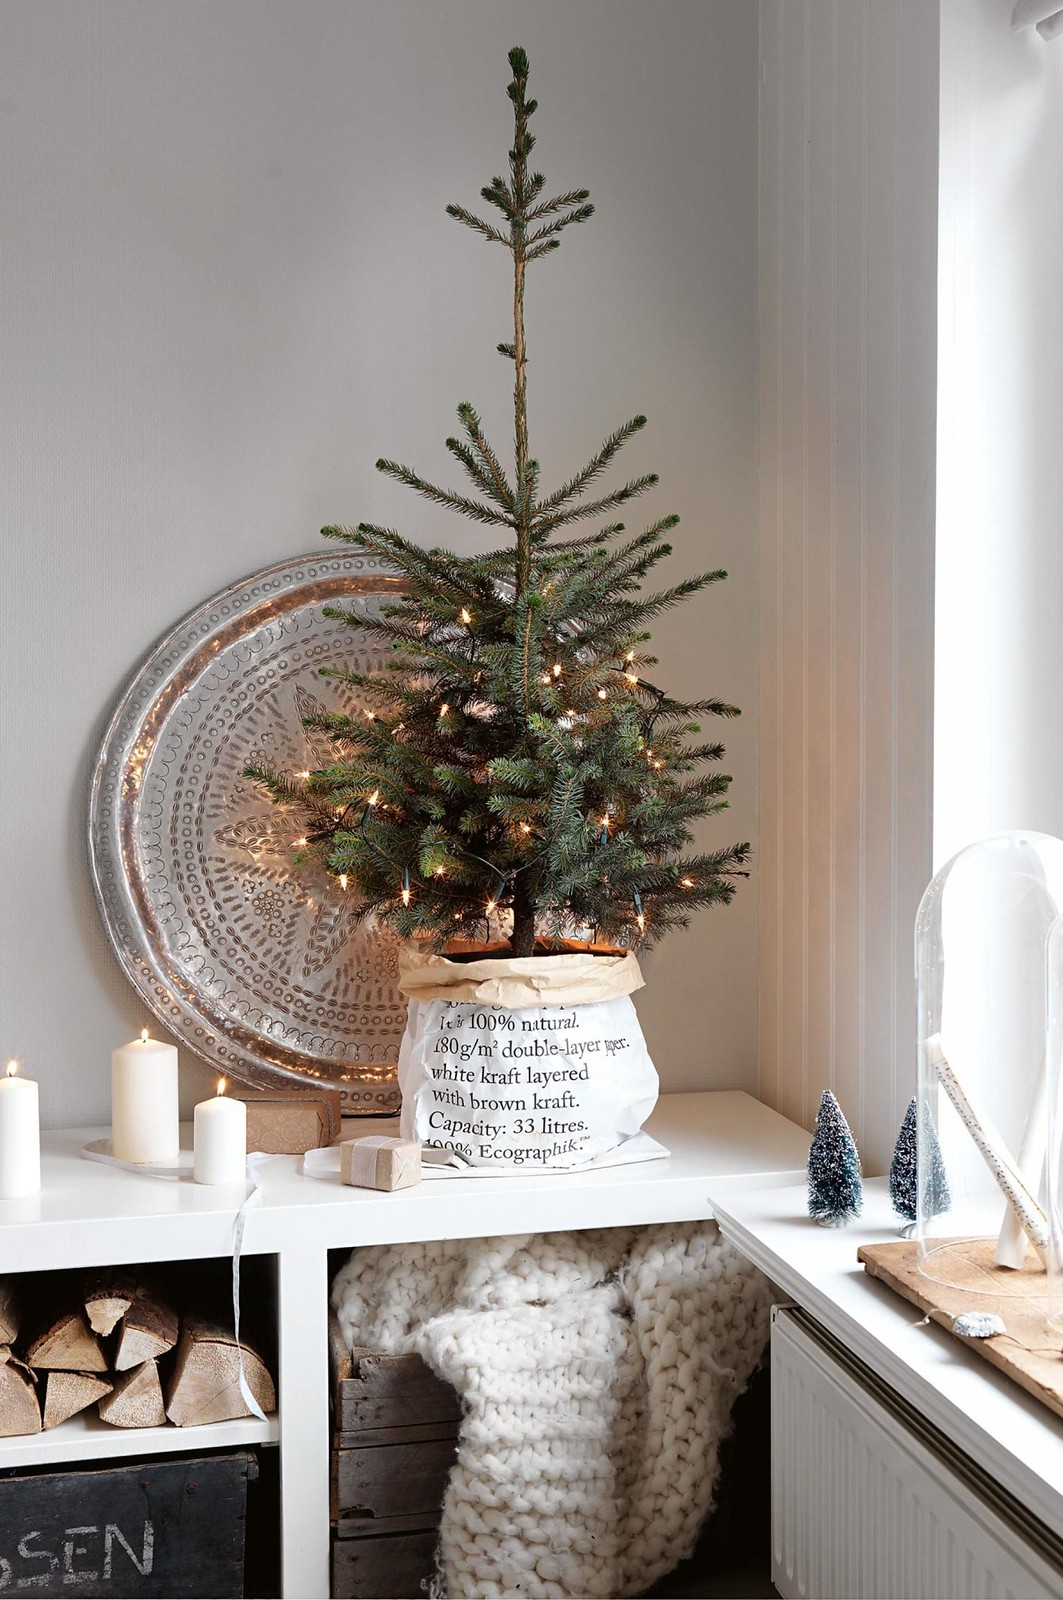 10 Ways to Decorate Your Christmas Tree - Mini Christmas Tree Just Lights